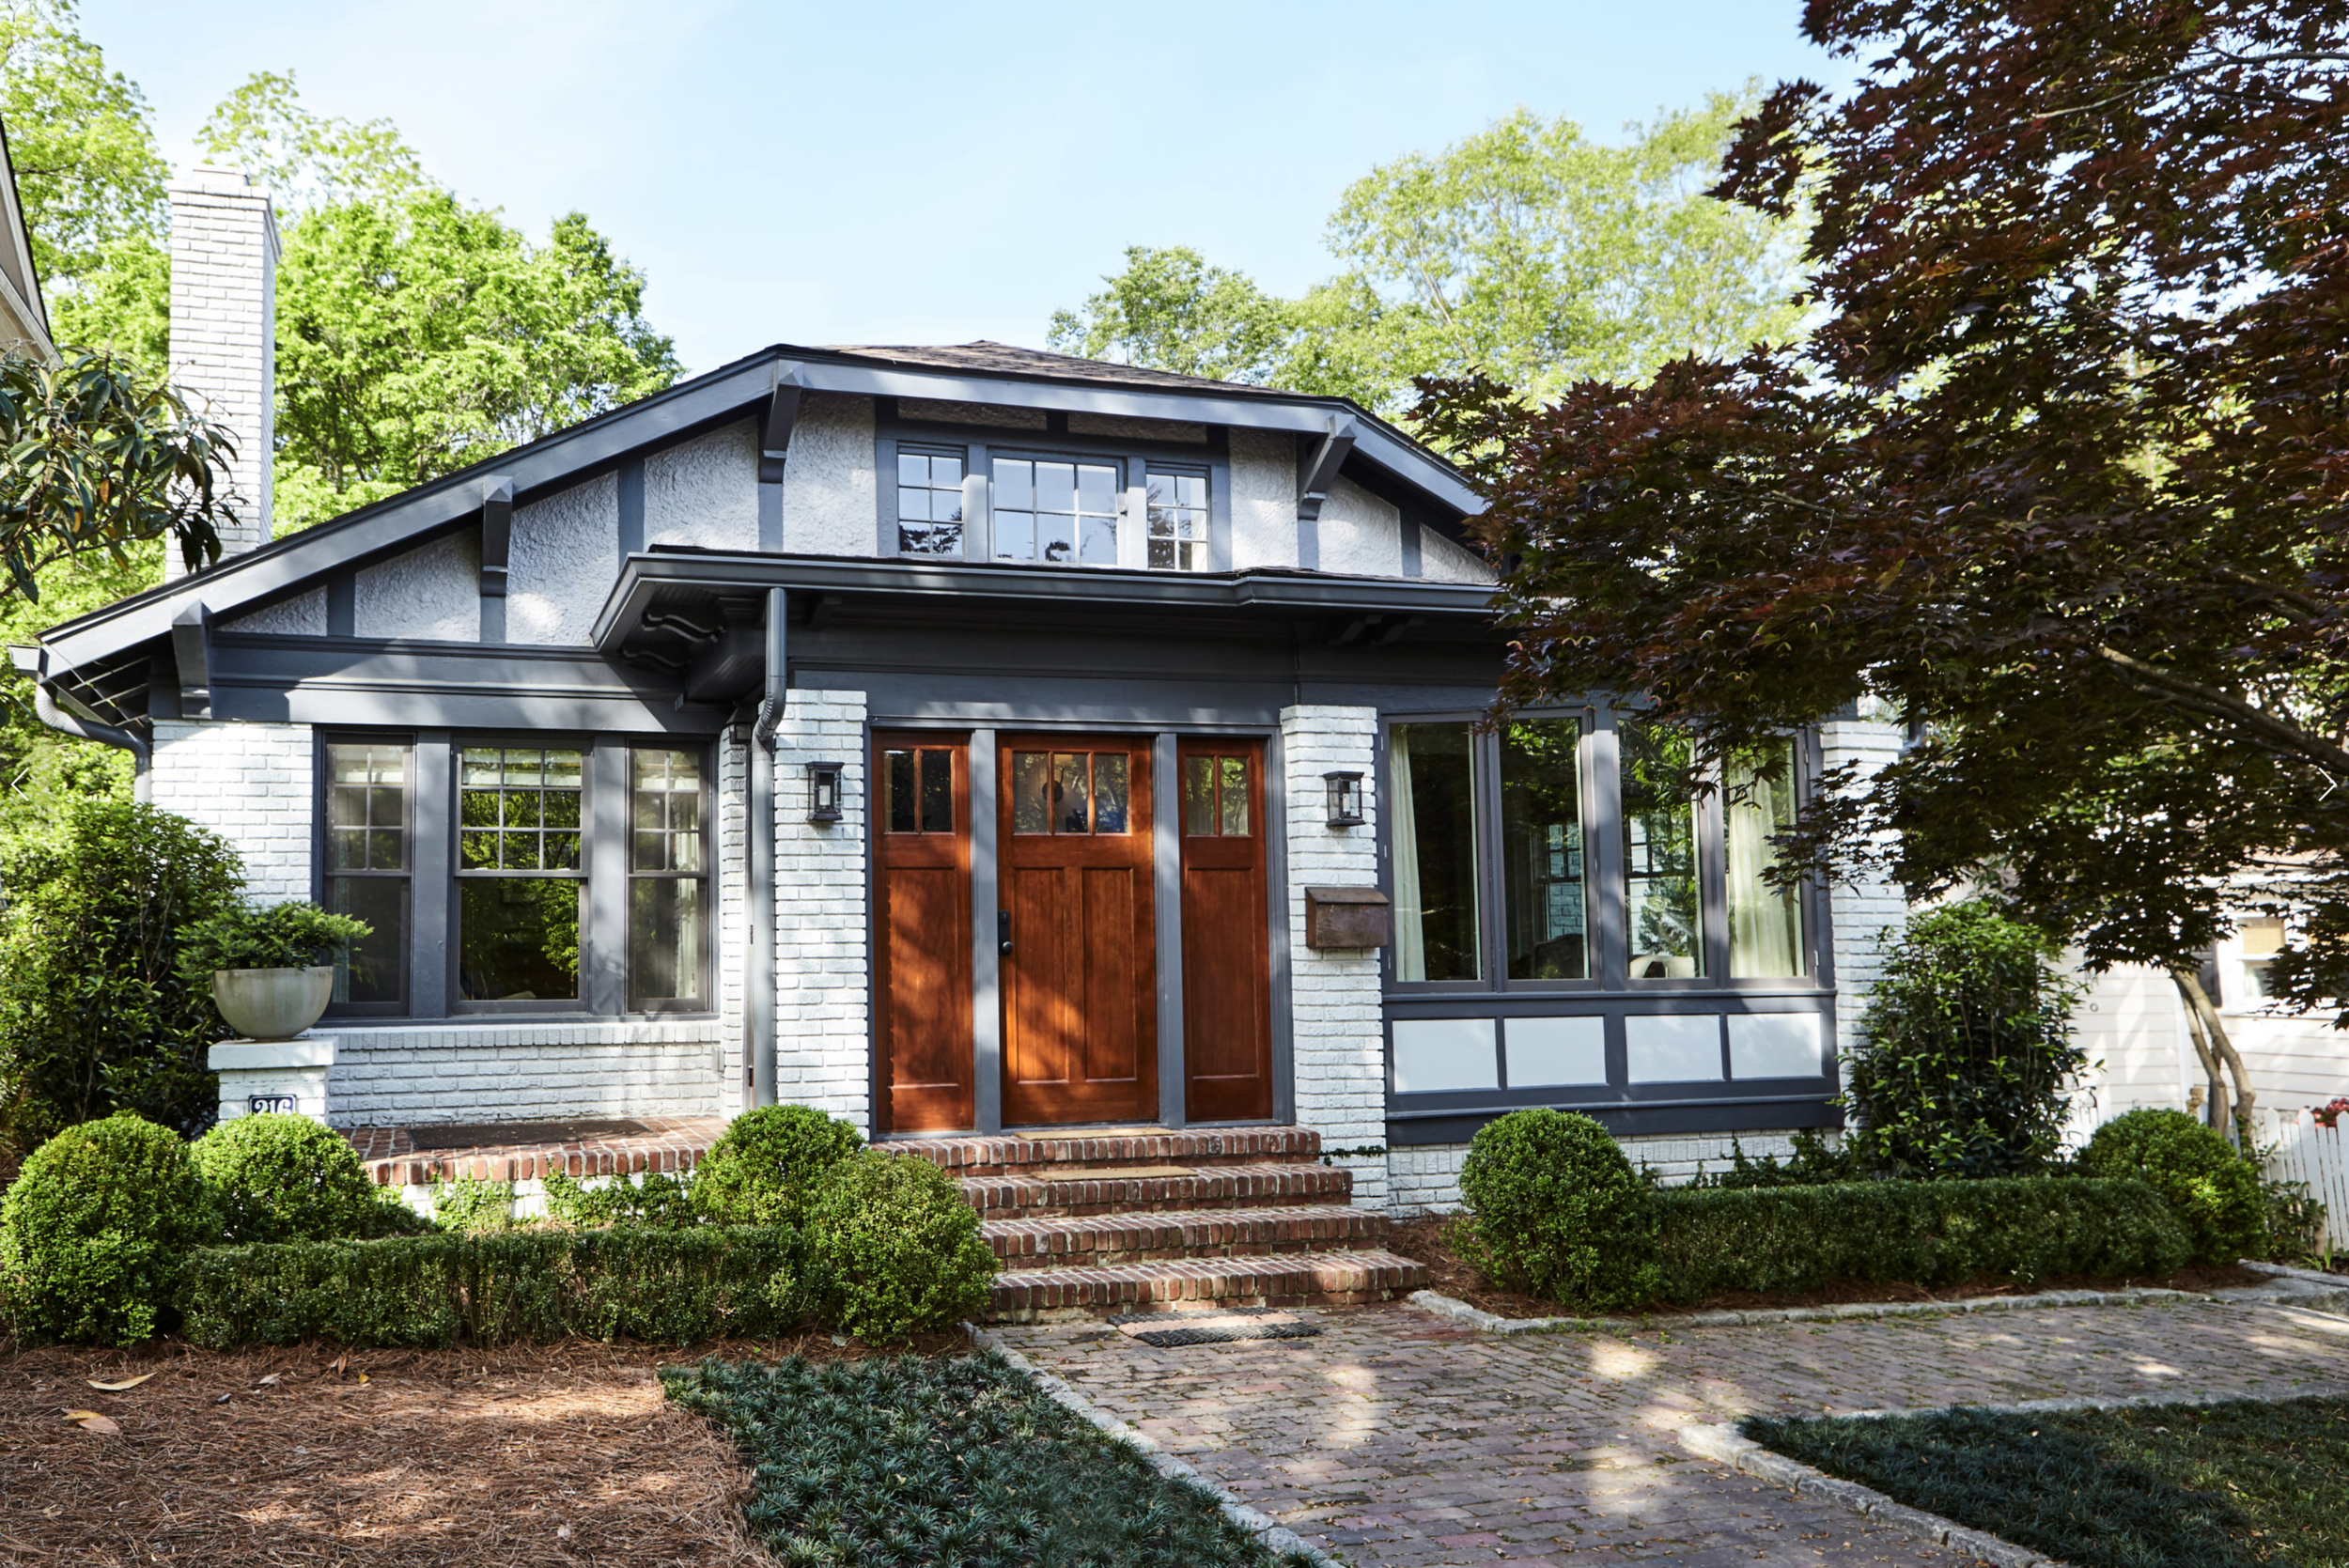 Designing Within the Guidelines - Navigating the Inman Park Historic District